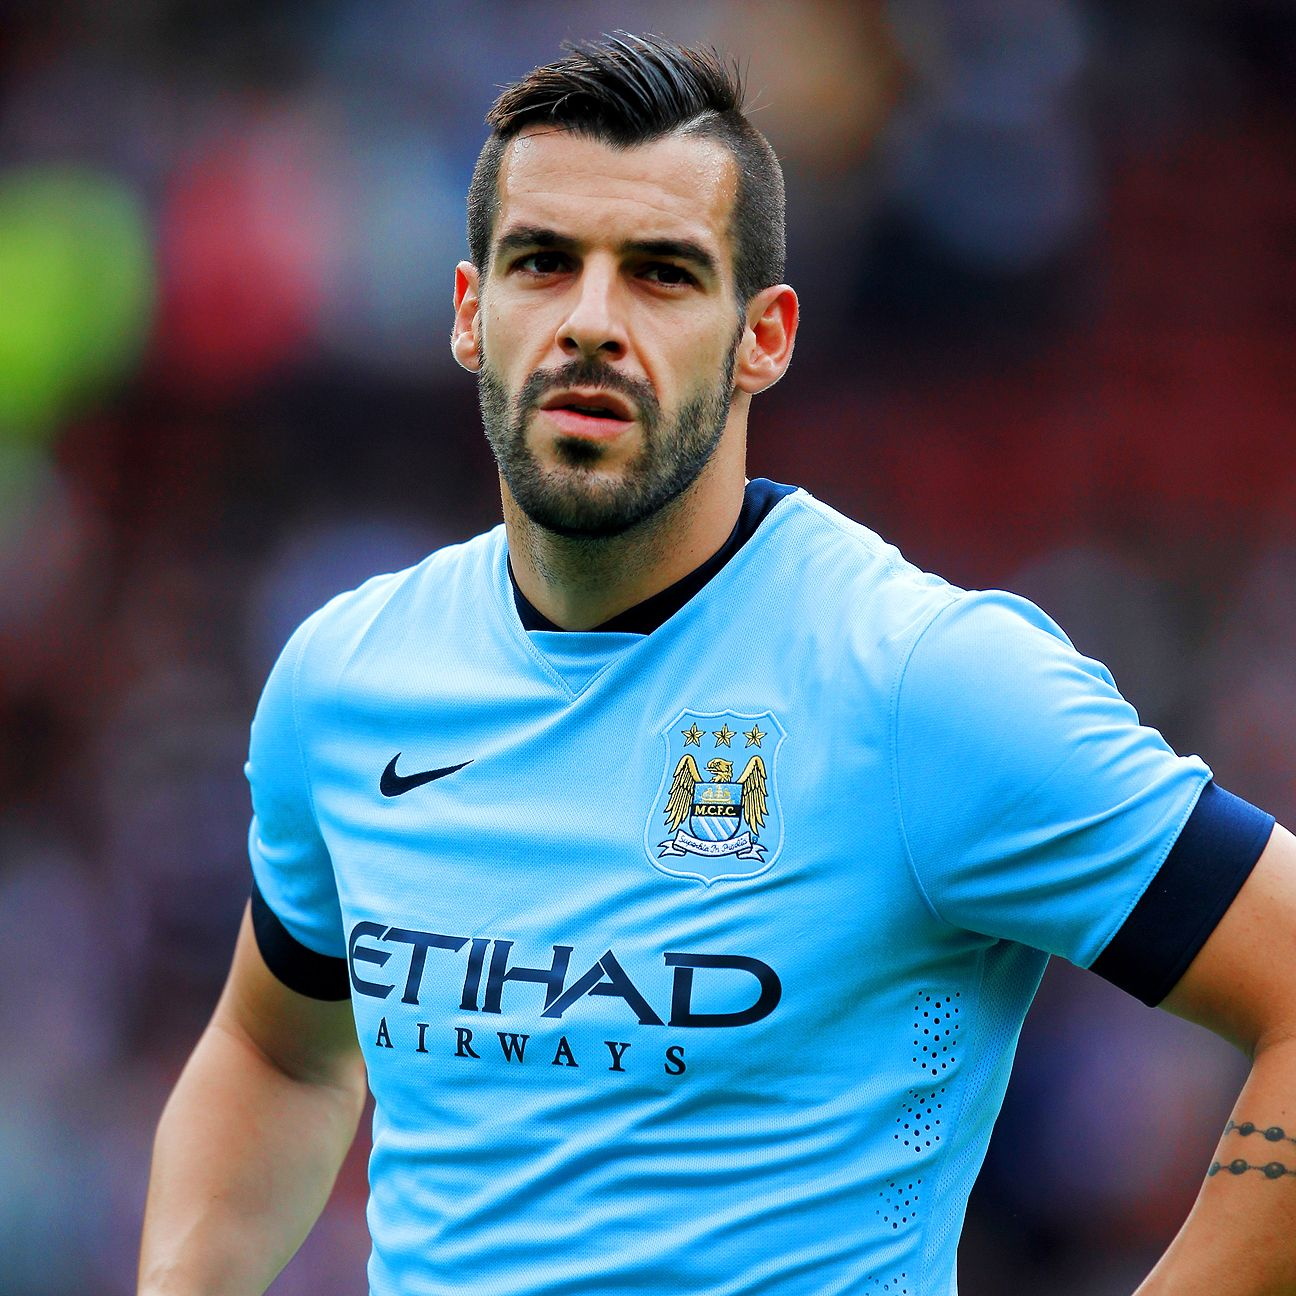 After a bright start to his Manchester City career, injuries and a lack of form eventually led Alvaro Negredo to leave the club.